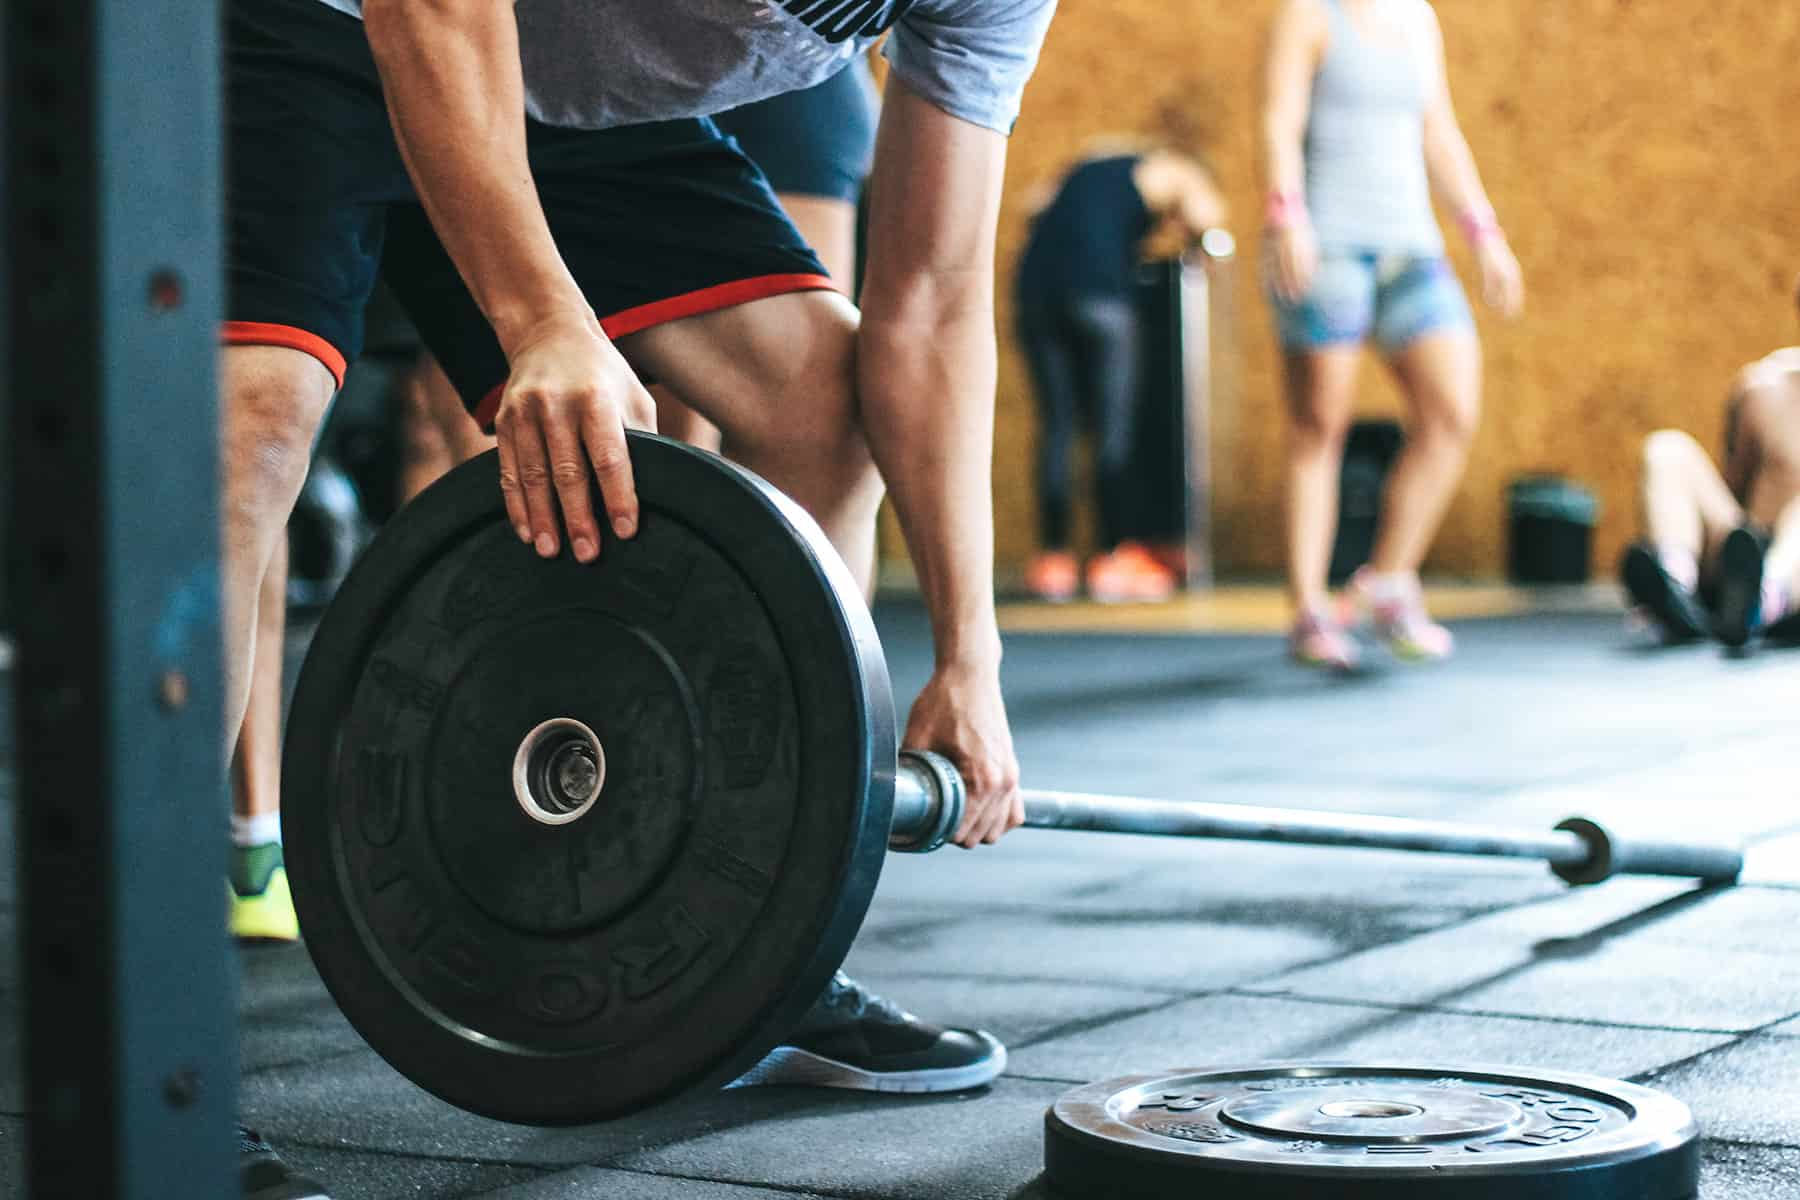 cbd being used during a gym routine